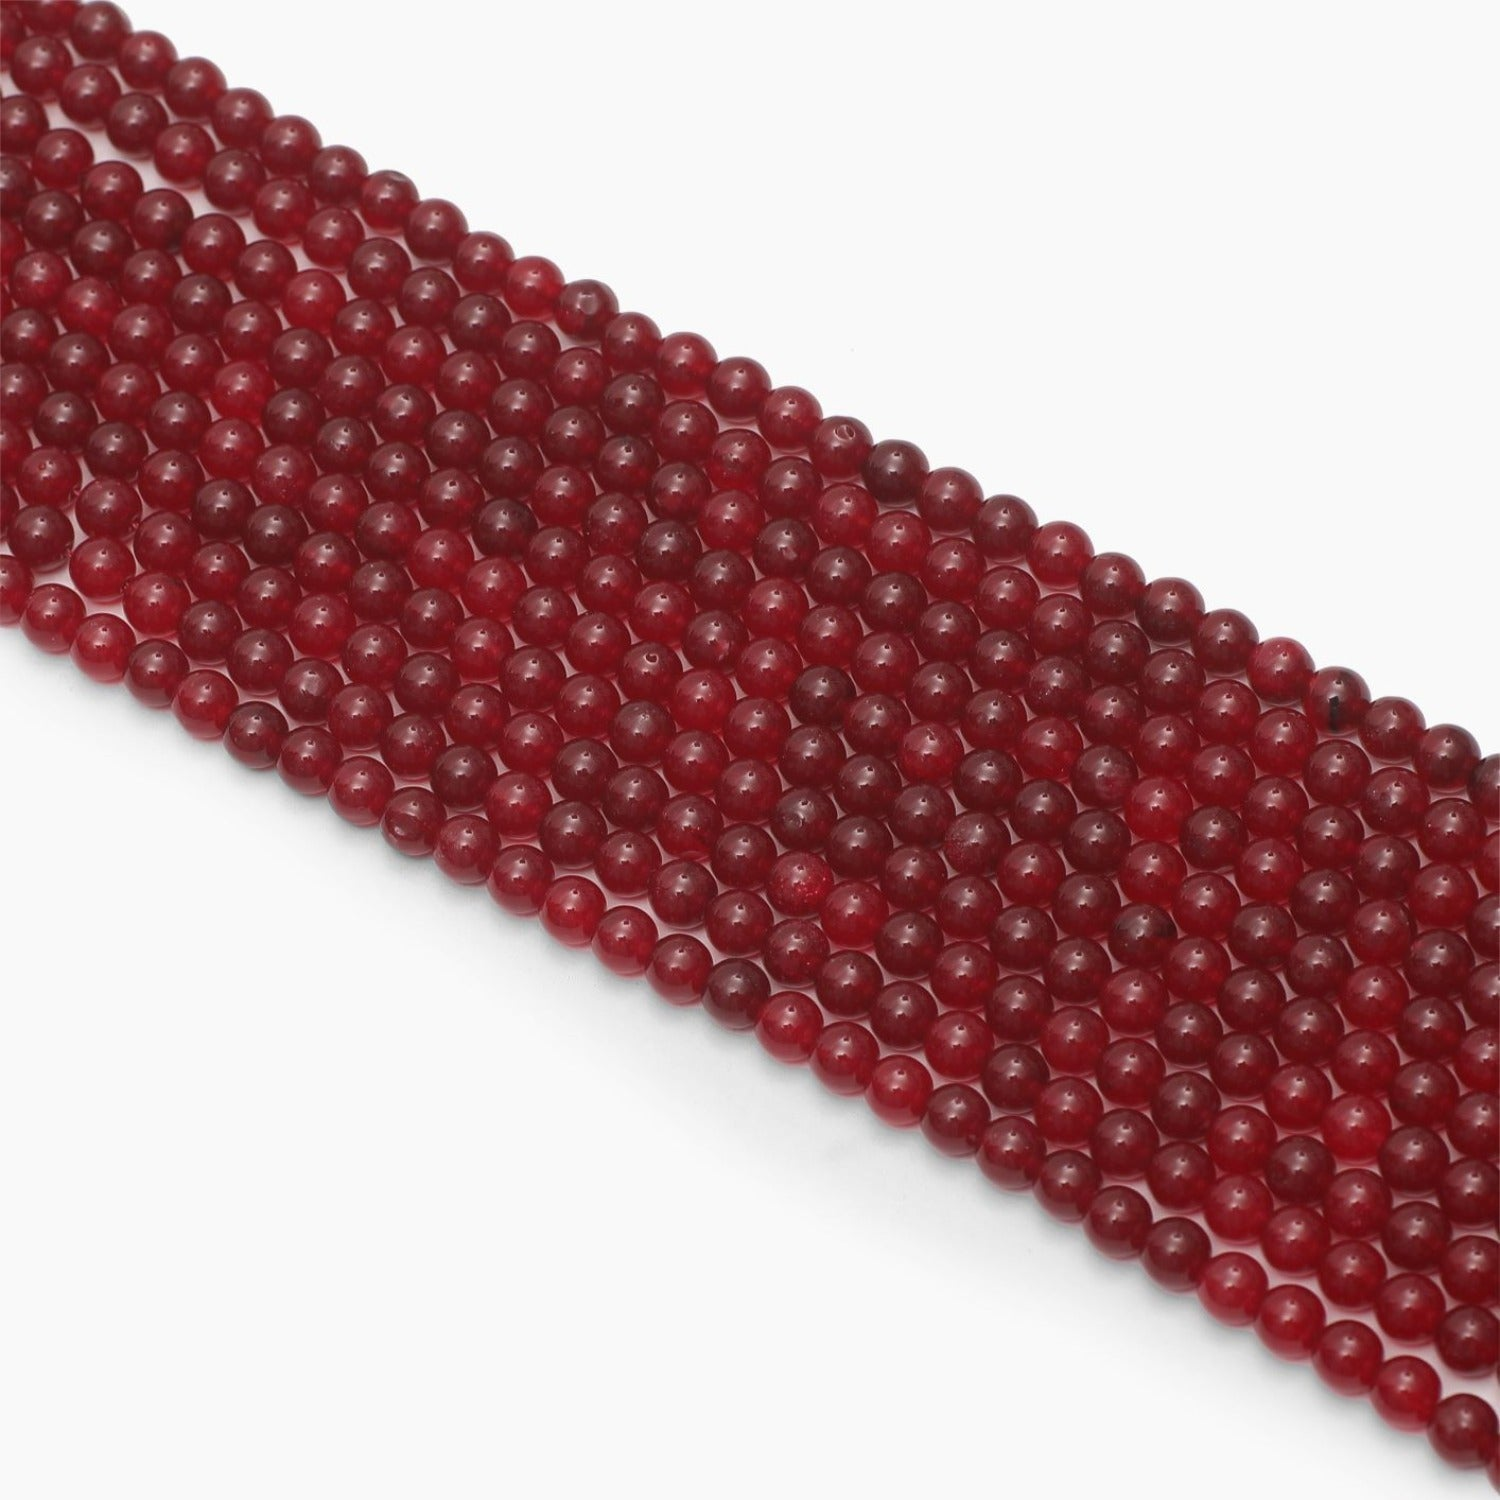 Red Jade Dyed Quartz 8mm Beads- Sold Per Strand